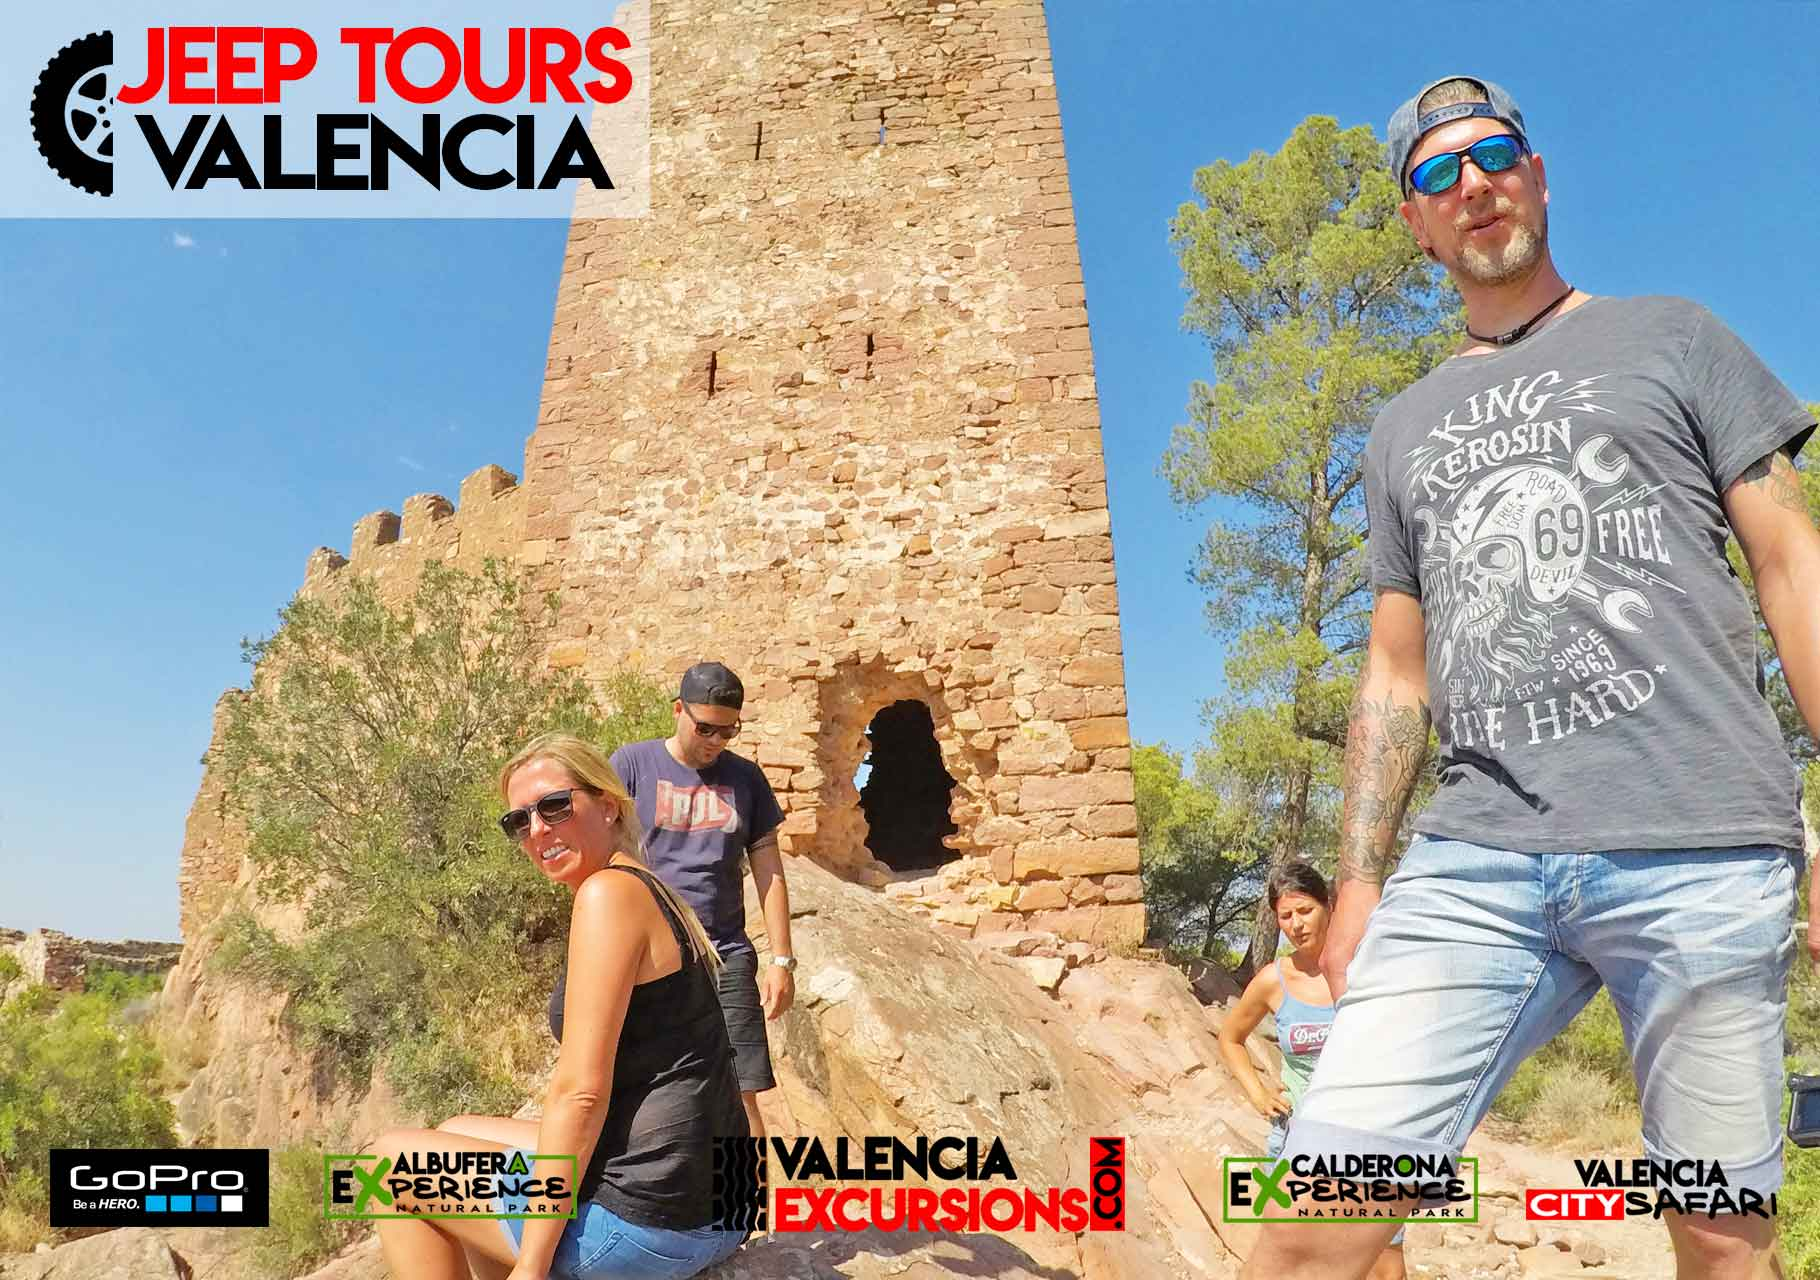 Visiting Castell de Serra during Off road adventure in Valencia with jeeps